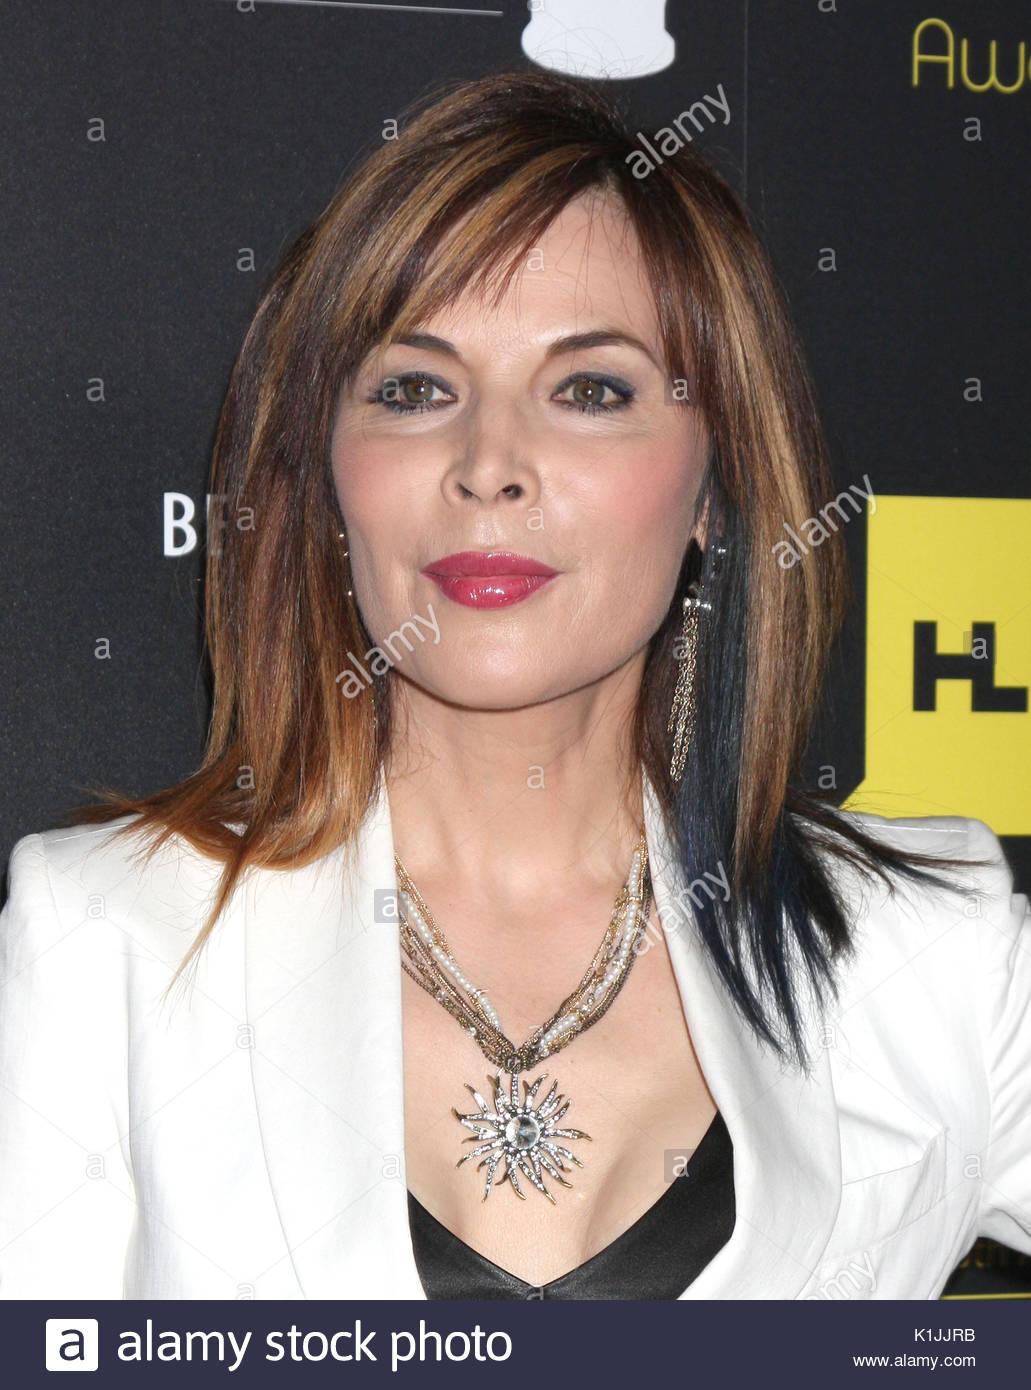 Watch Lauren Koslow video